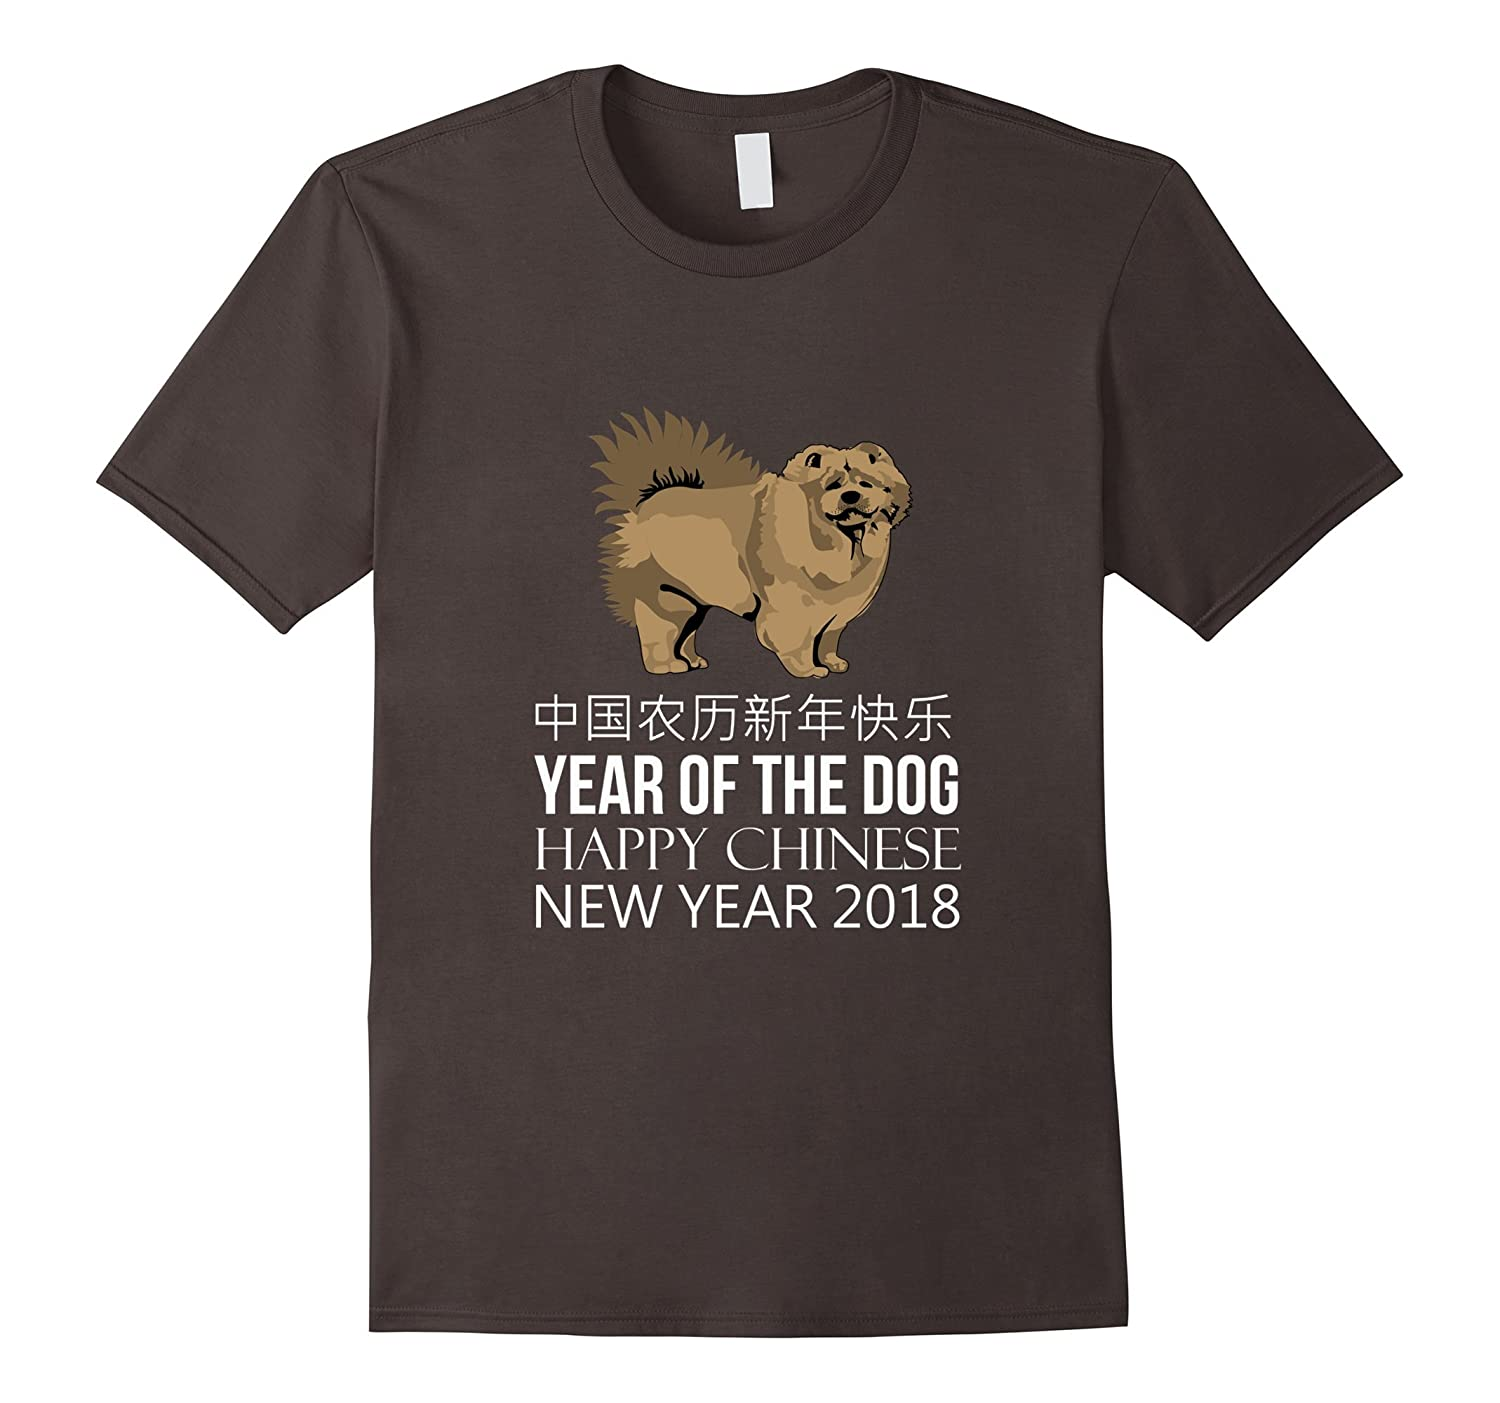 Happy Chinese New Year 2018 Year of the Dog Chow-Chows